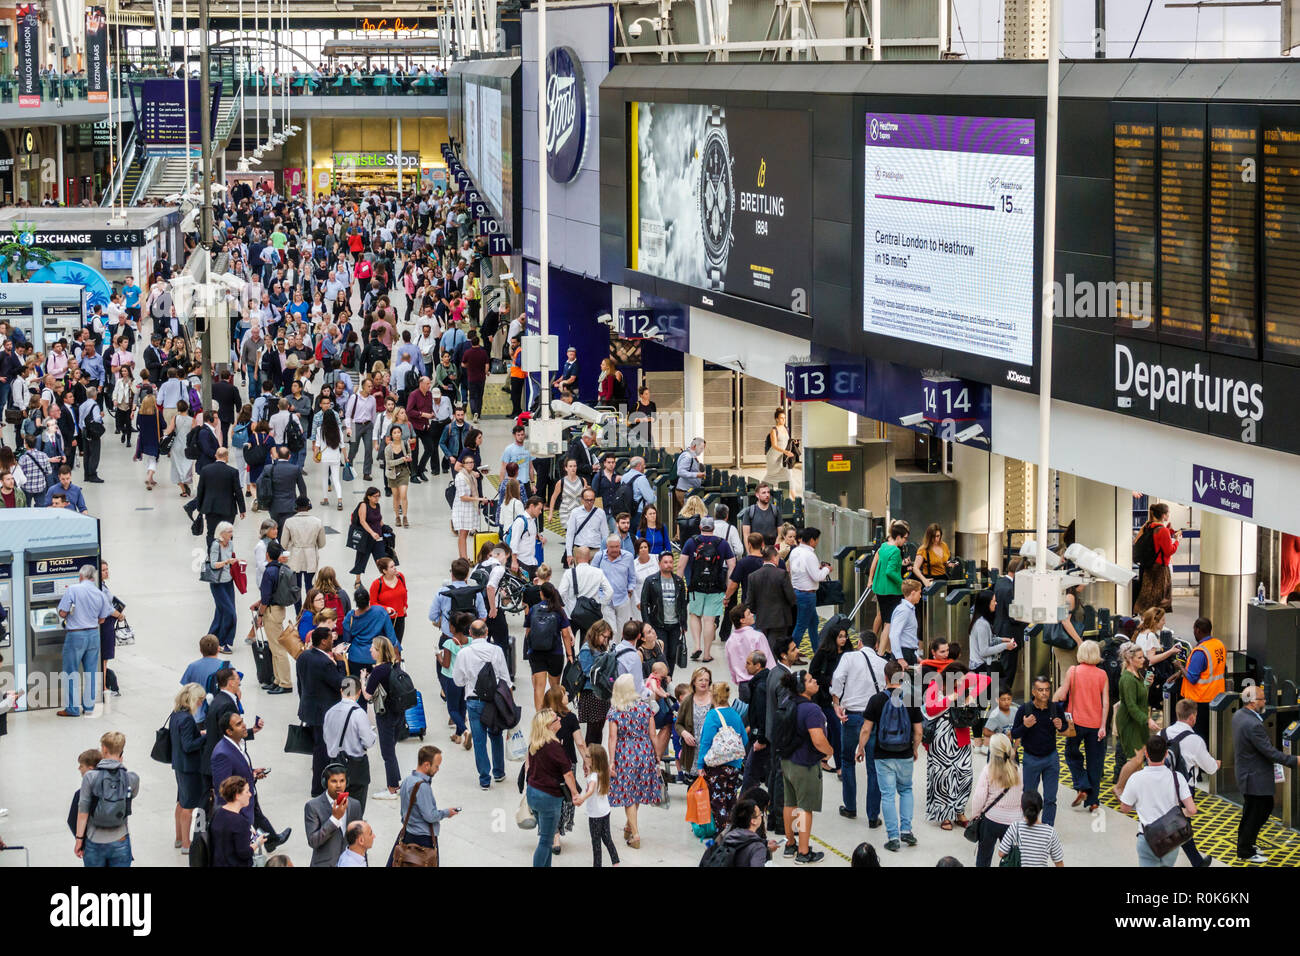 London England United Kingdom Great Britain Lambeth South Bank Waterloo Station trains railway concourse passenger commuters terminal man woman crowd - Stock Image